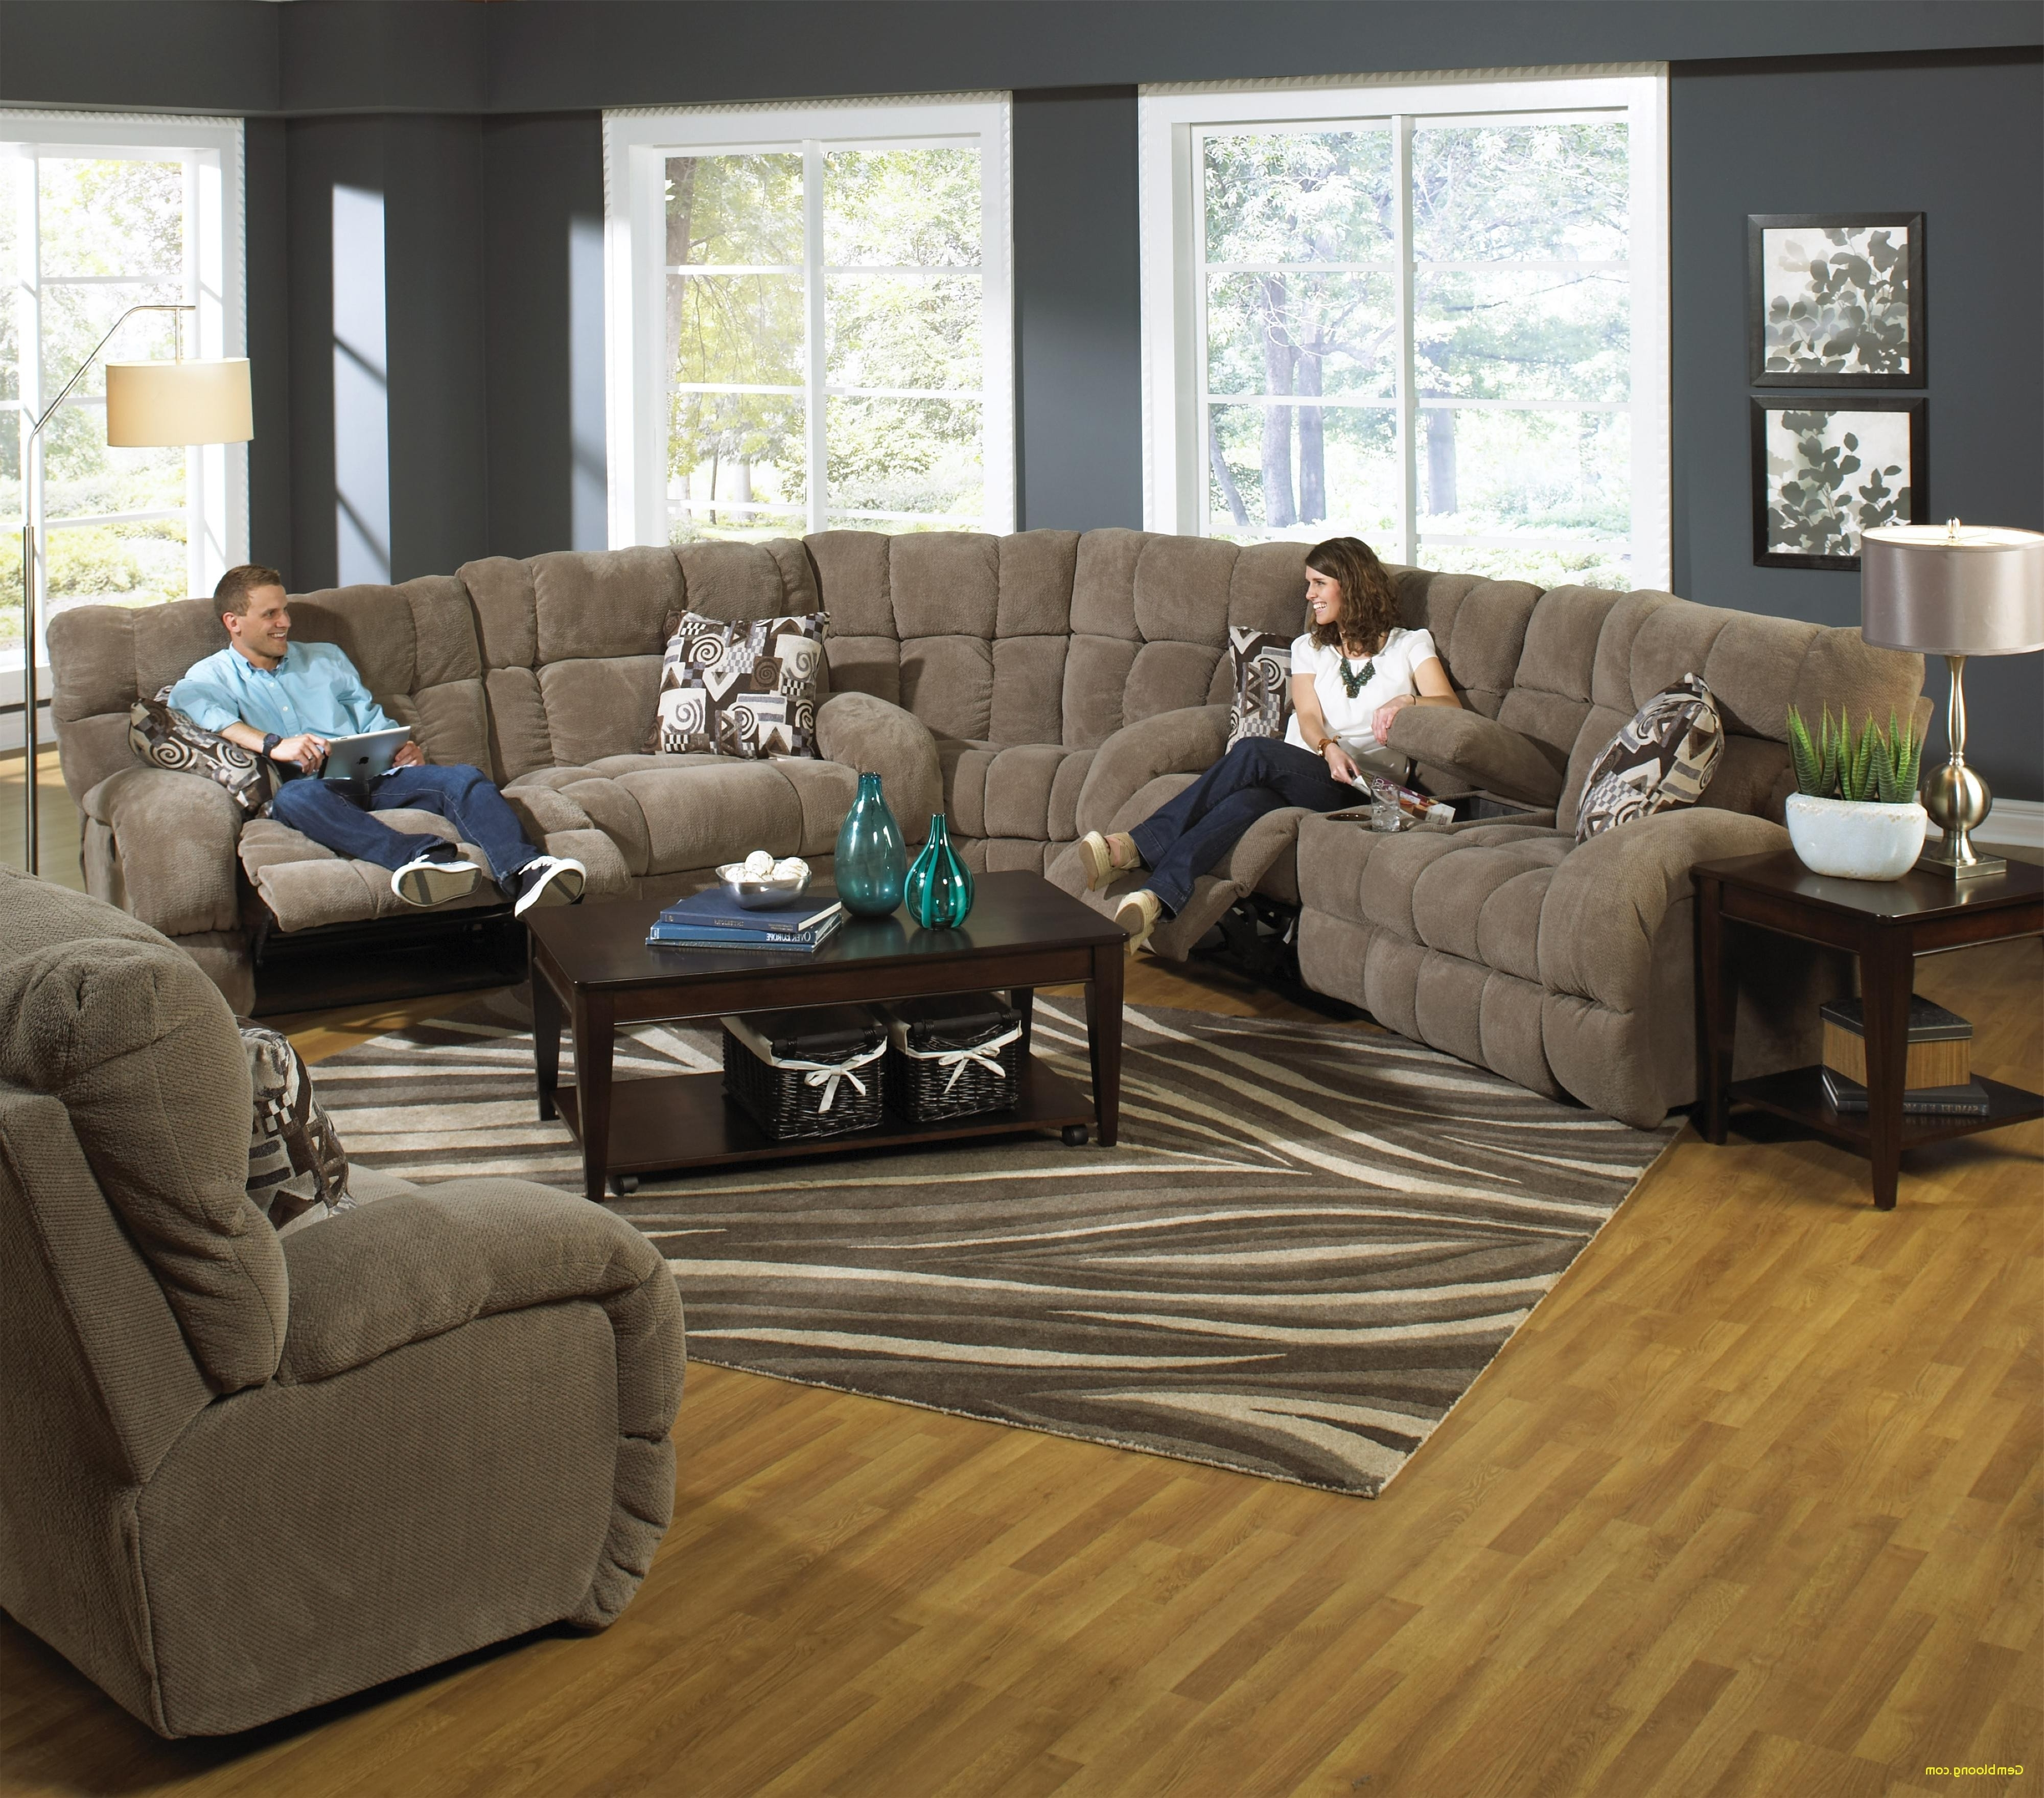 2018 Sleeper Sectionals With Chaise Beautiful Sleeper Sectional Sofa Intended For Sleeper Sectionals With Chaise (View 5 of 15)